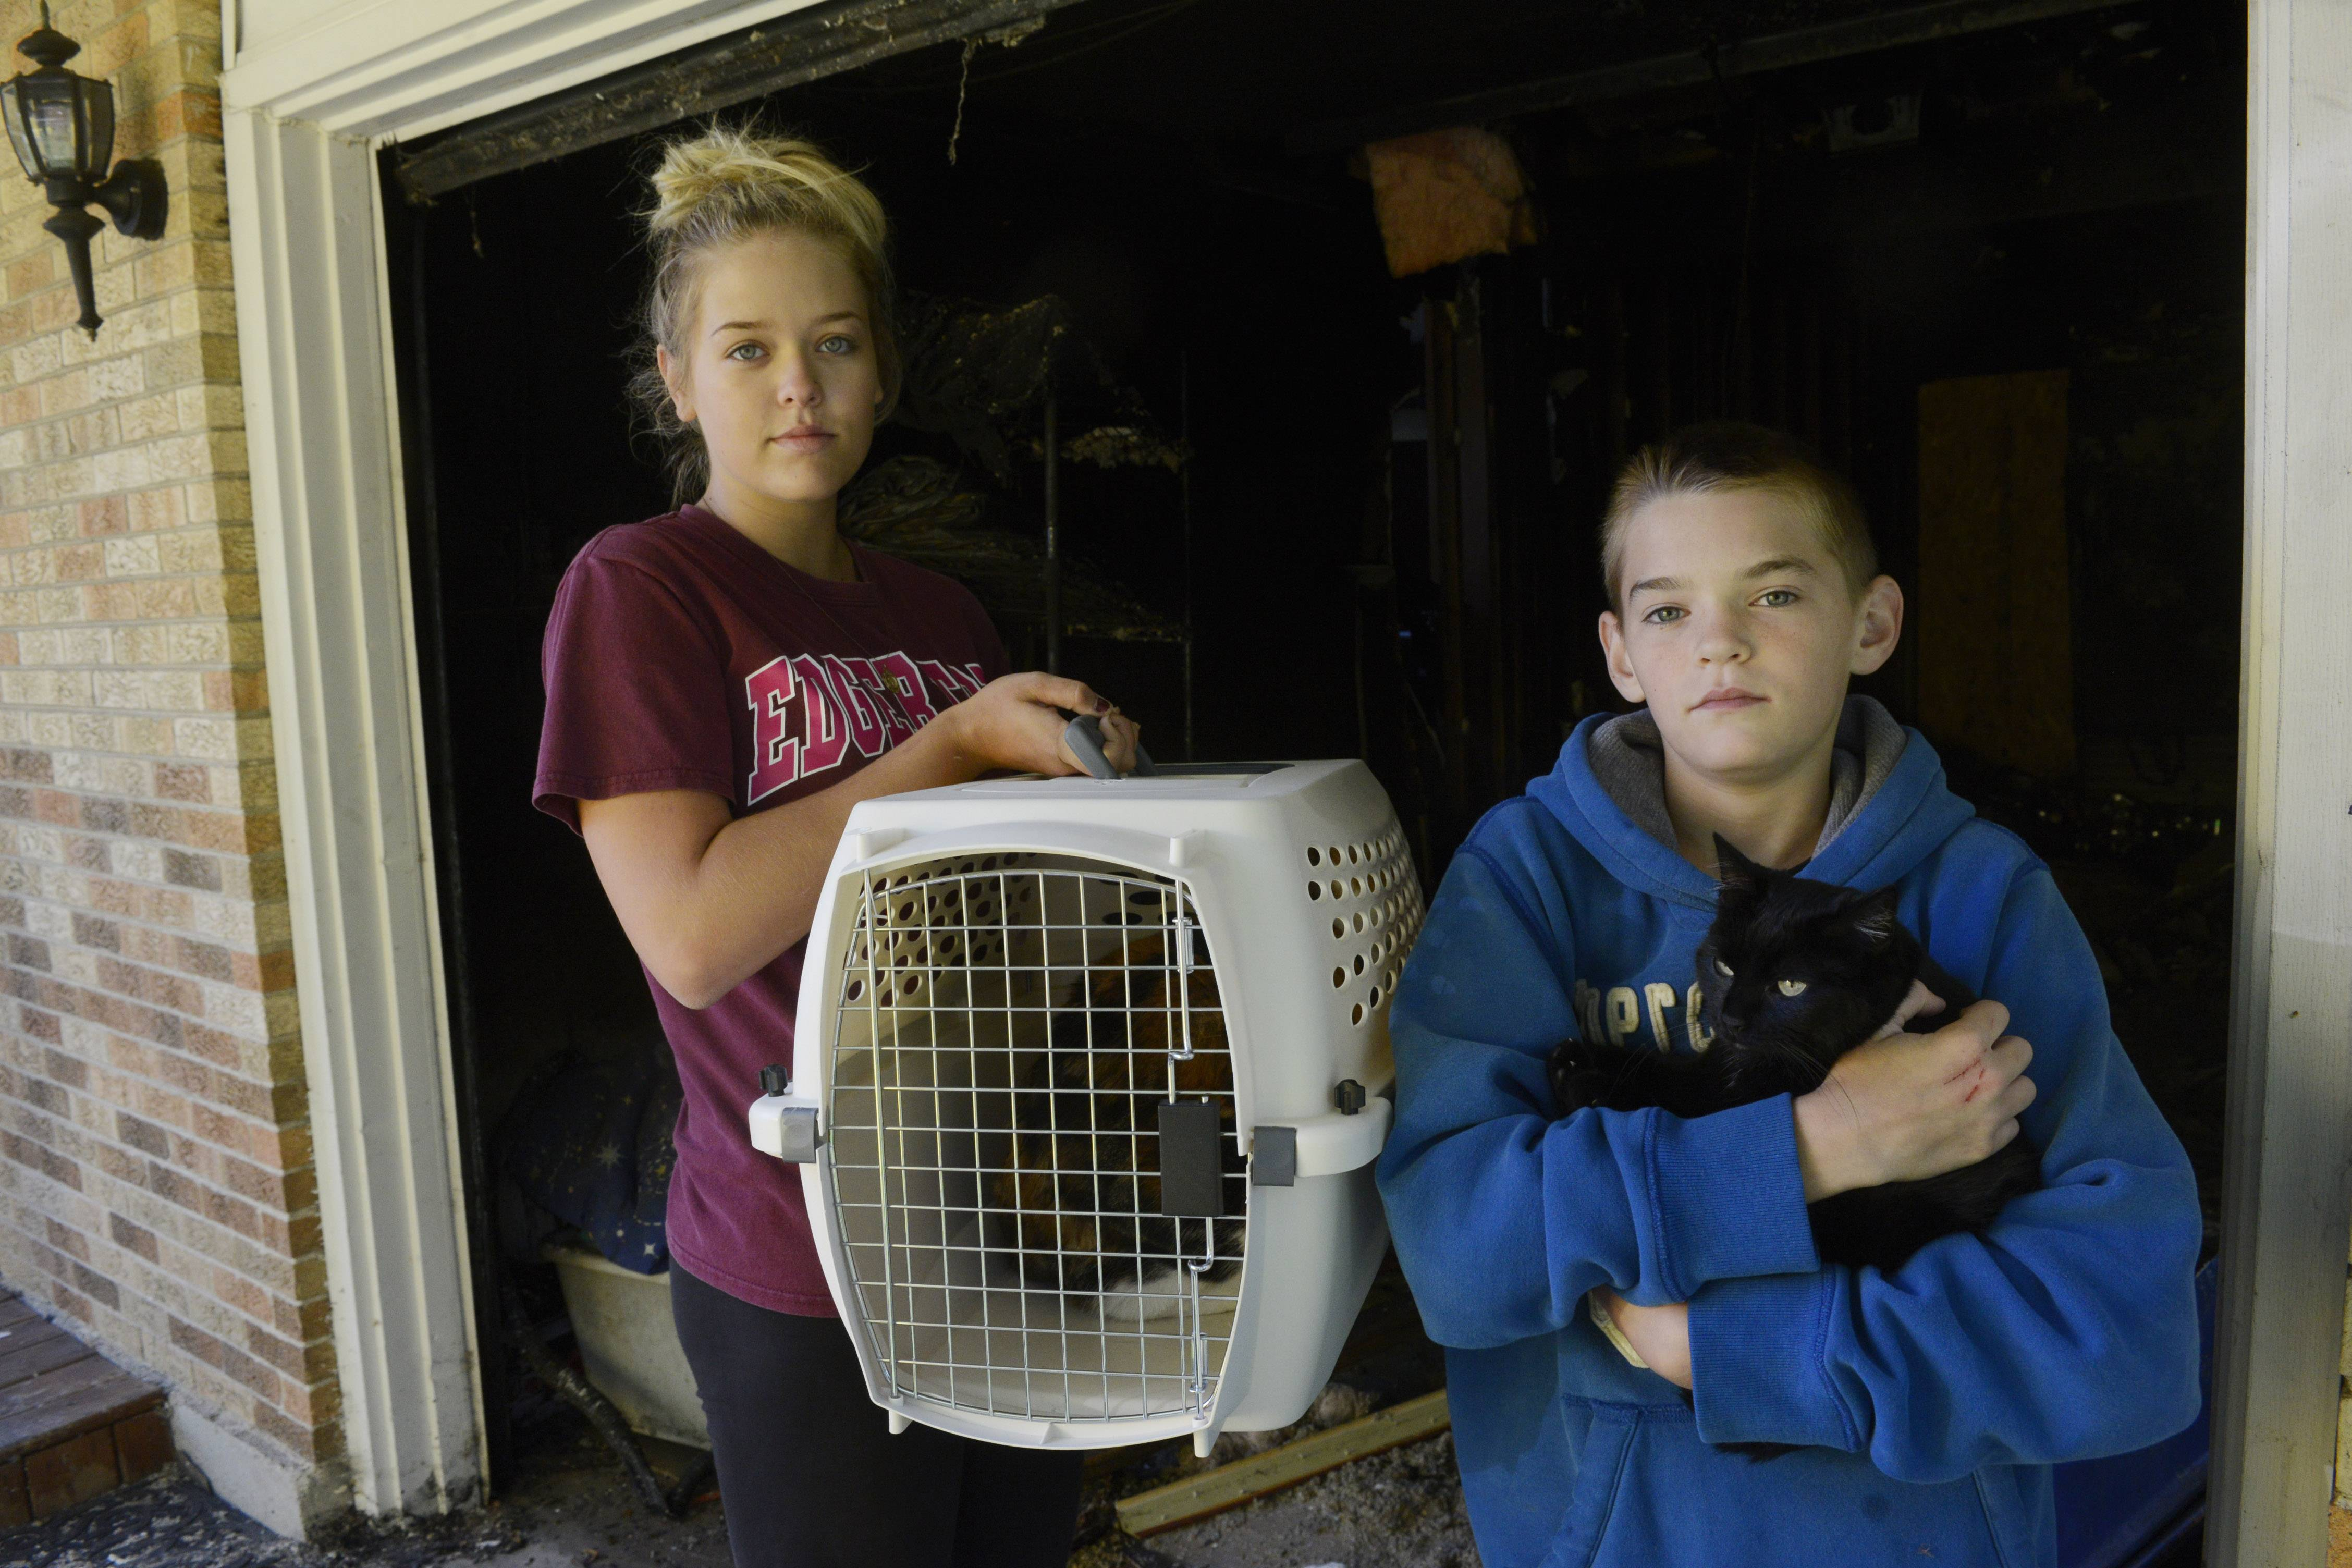 Dominic Laskero, 13, right, was instrumental in getting his 19-year old sister, Jessica Lotesto, left, and his 77-year-old grandmother out of their burning Hoffman Estates house Sunday morning. He also got their dog out, and firefighters arrived quickly enough to recover and resuscitate two cats which had been trapped inside.